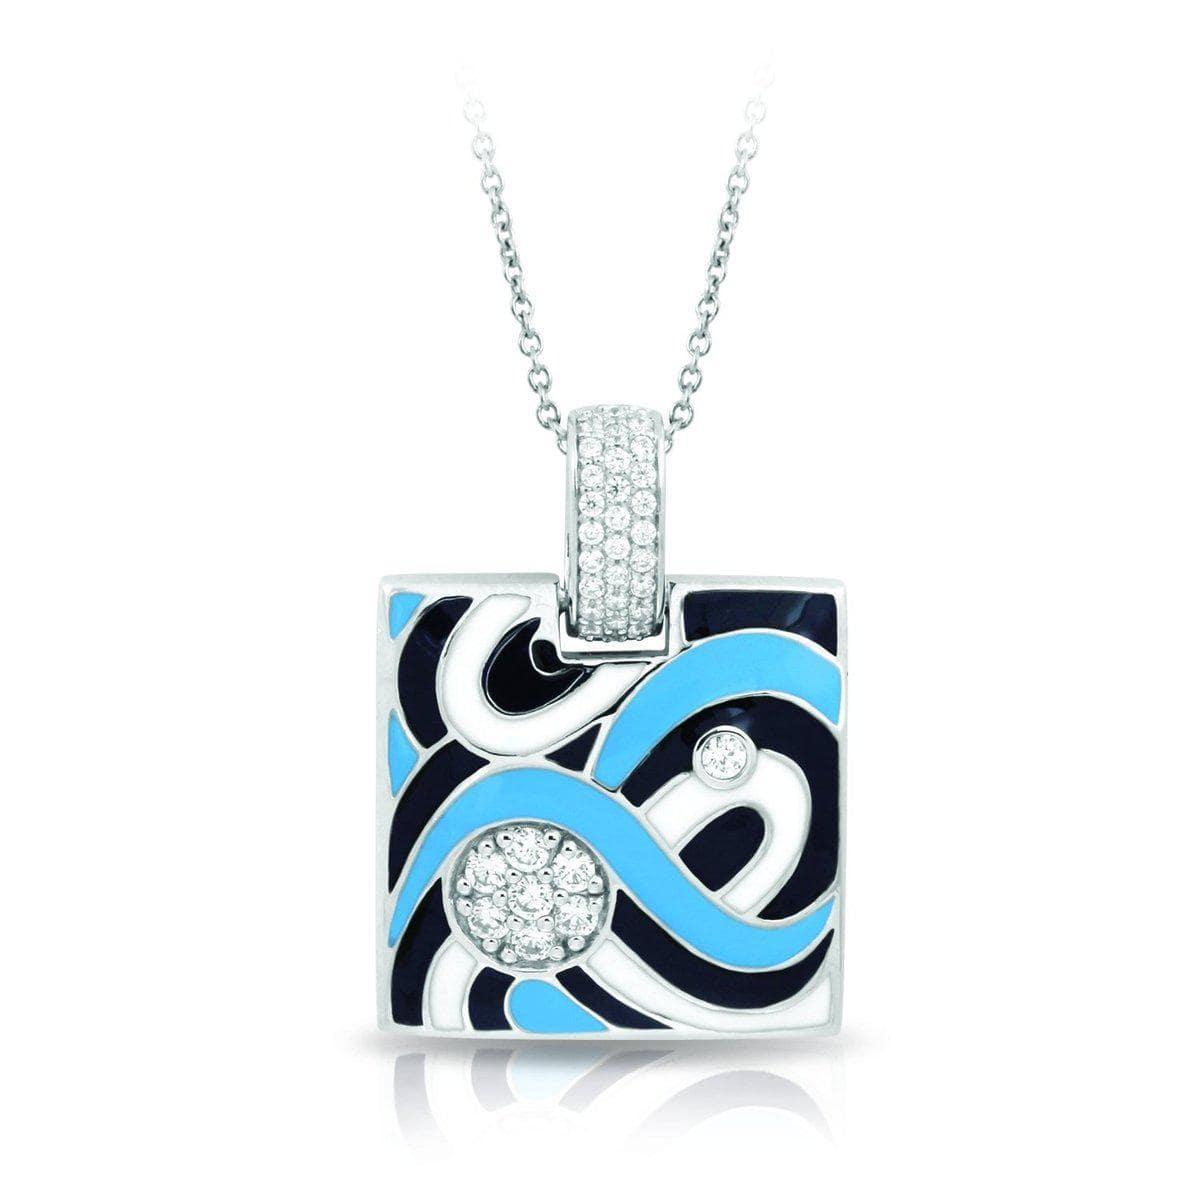 Vortice Black and Blue Pendant-Belle Etoile-Renee Taylor Gallery